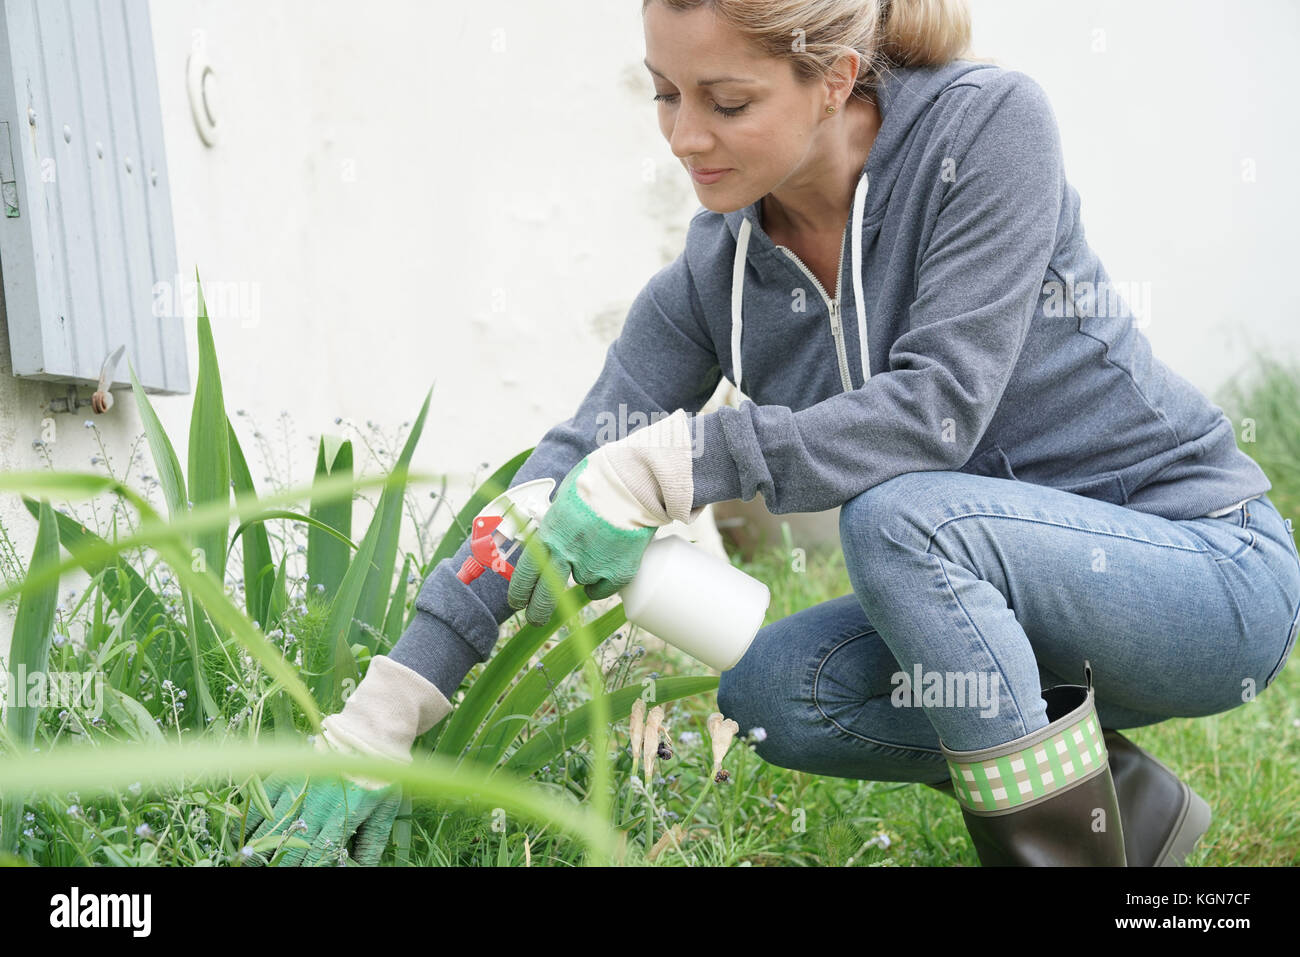 Woman in garden spraying insecticide over plants - Stock Image